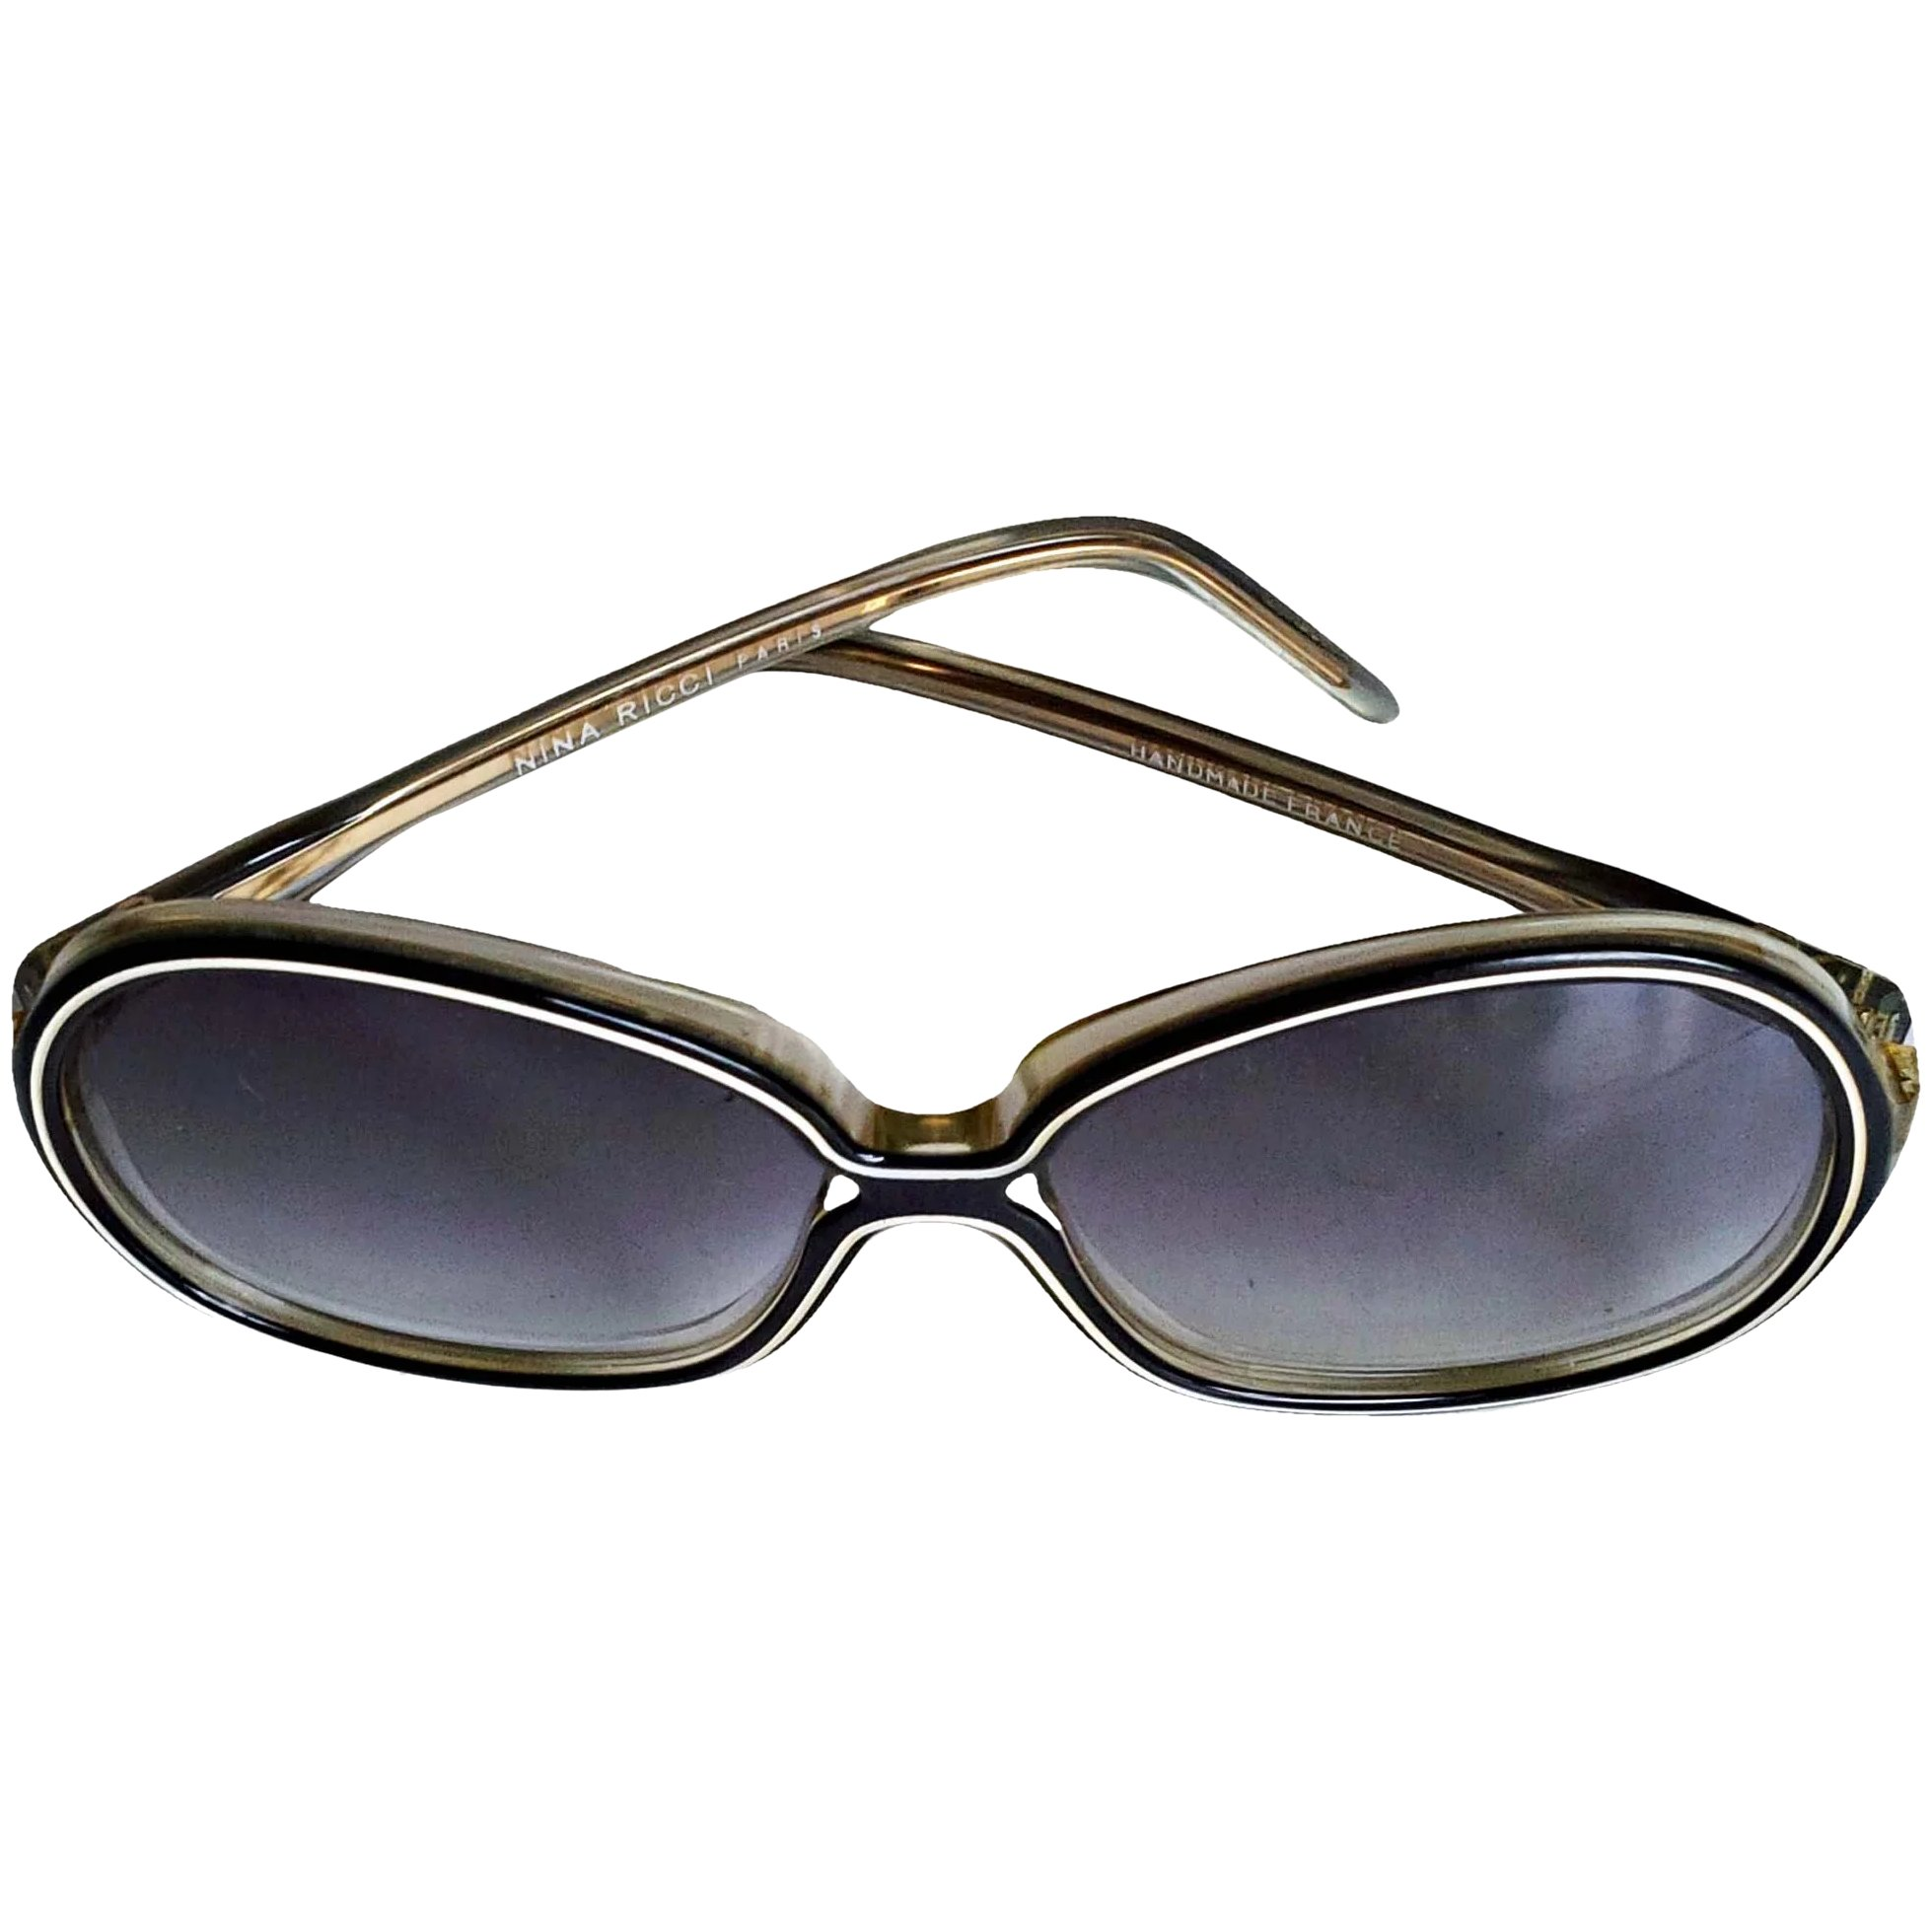 Metal Rim Butterfly Designer Fashion Sunglasses with Belt Buckle Arms